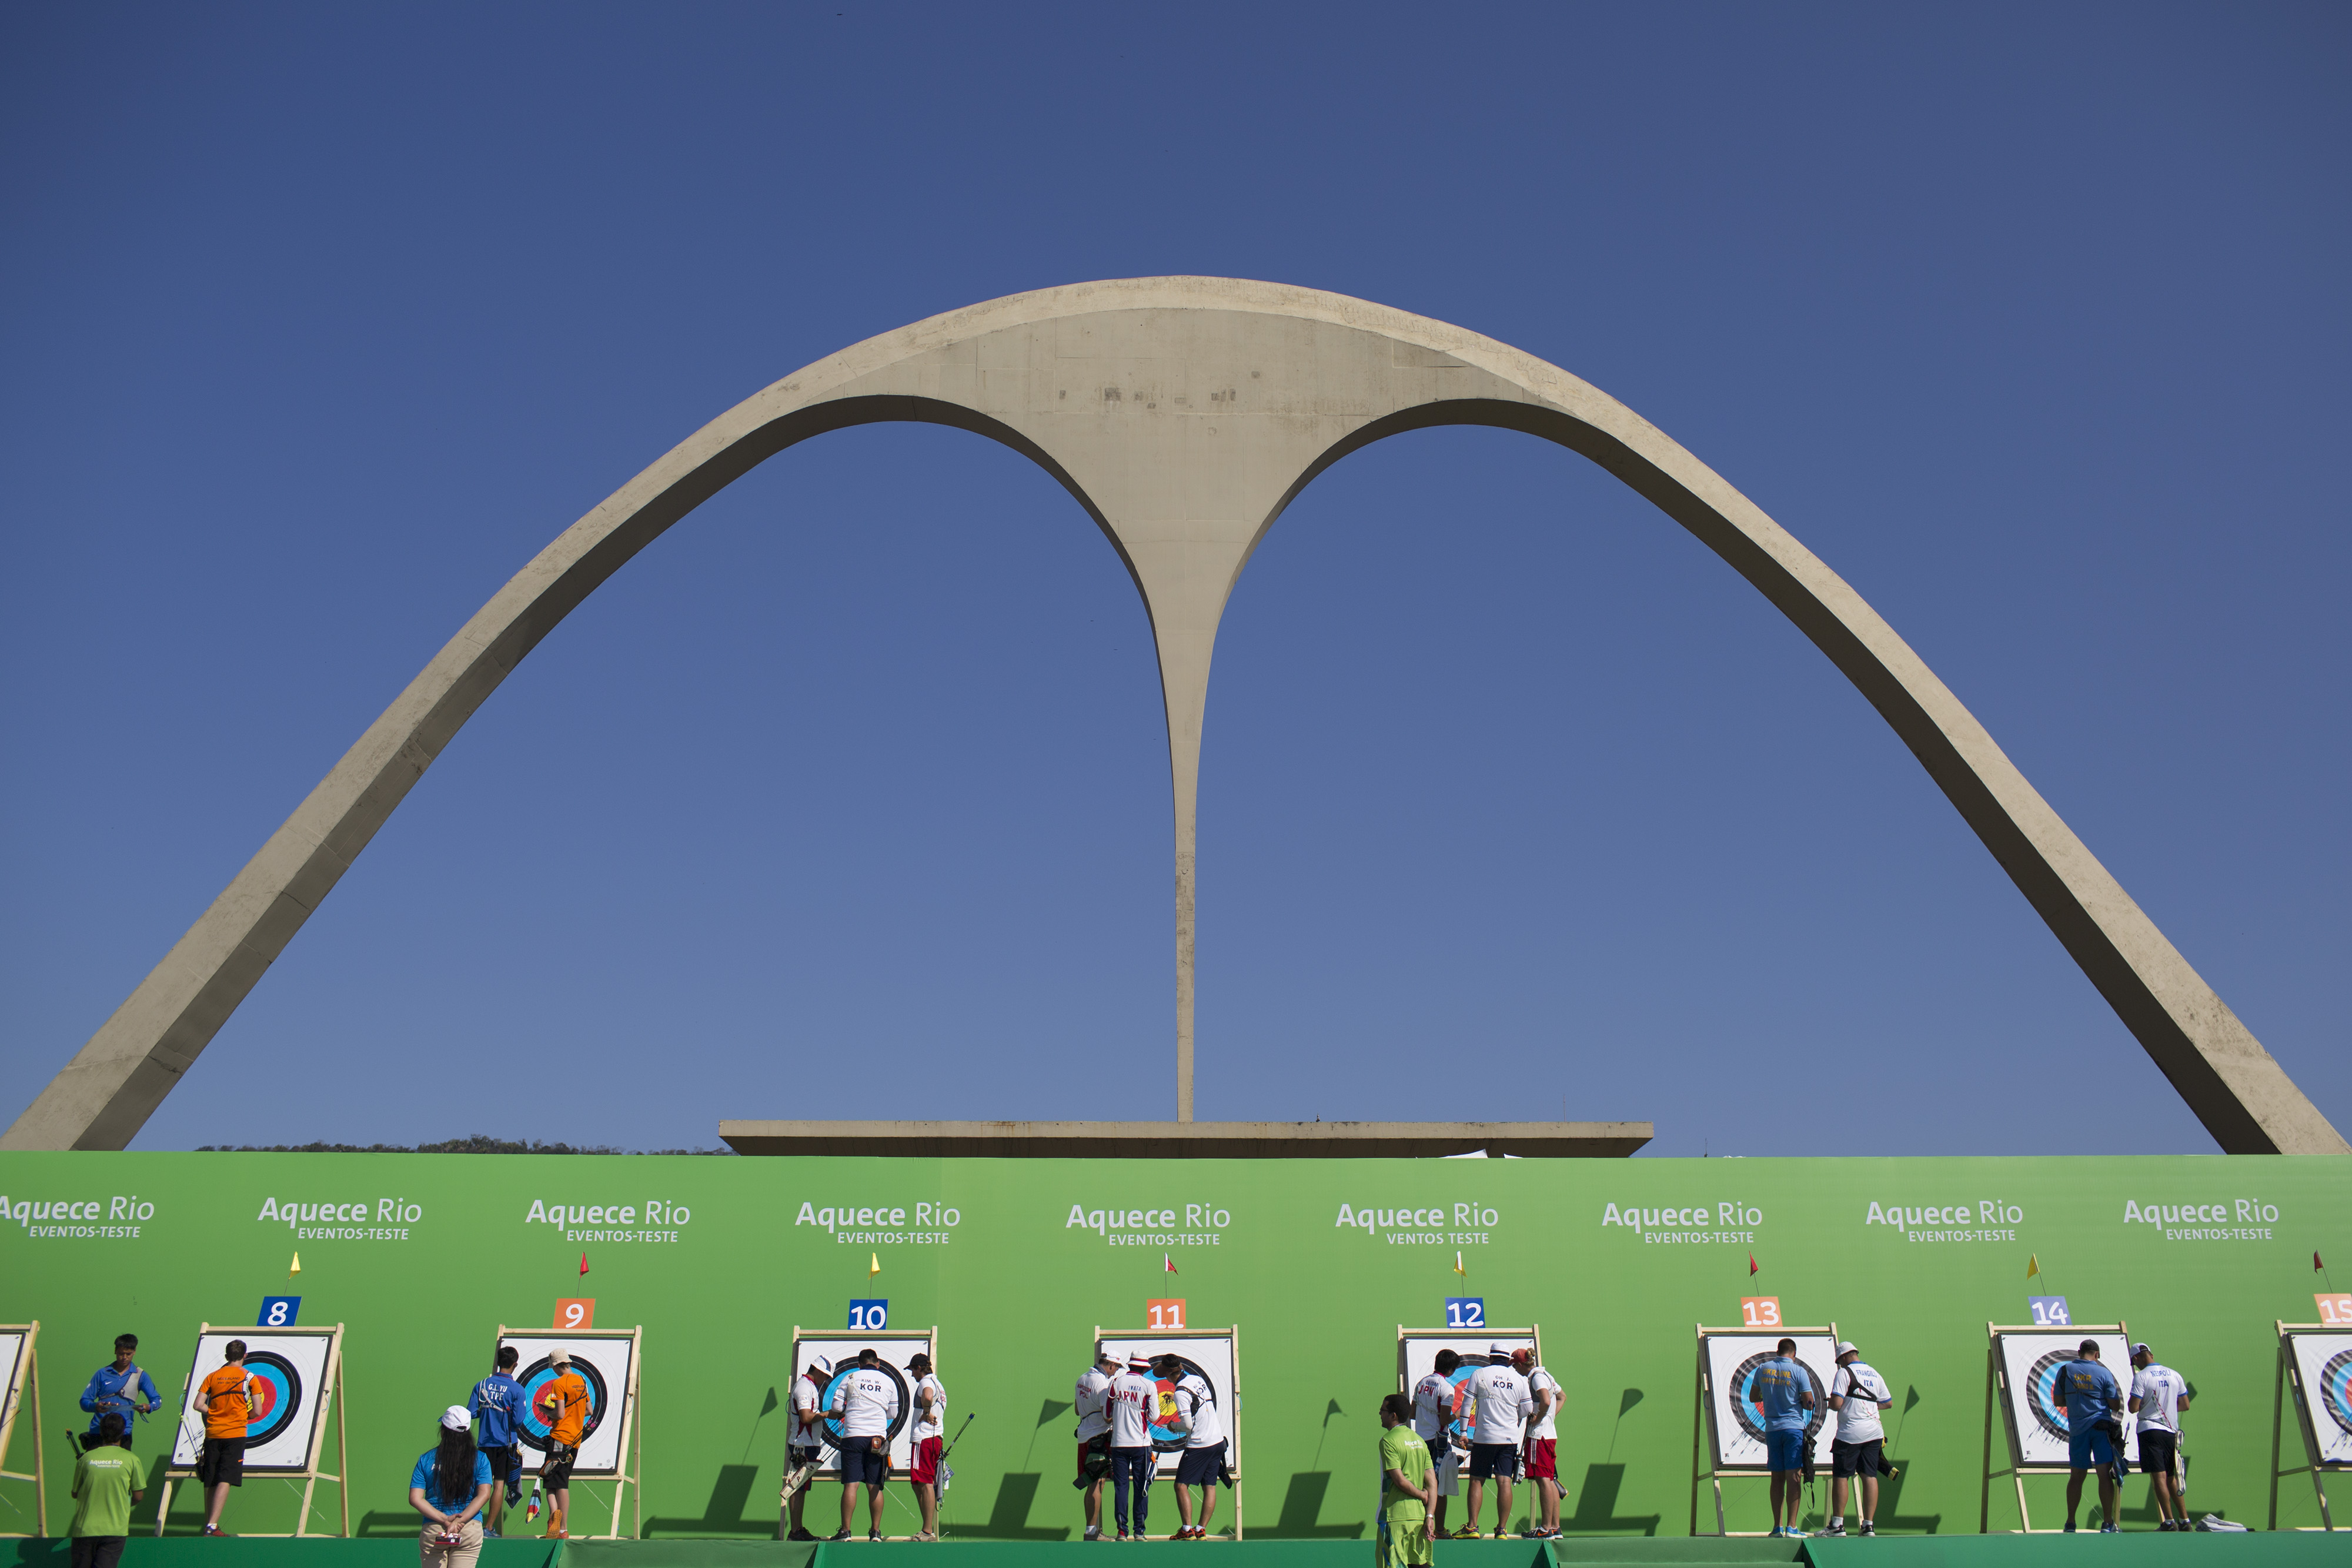 In this Tuesday, Sept. 15, 2015 photo, archers check the targets during the first day of the archery test event for the Rio 2016 Olympic Games at the Sambadrome in Rio de Janeiro, Brazil. Rio's Olympics next year should be a tour guide's delight with many